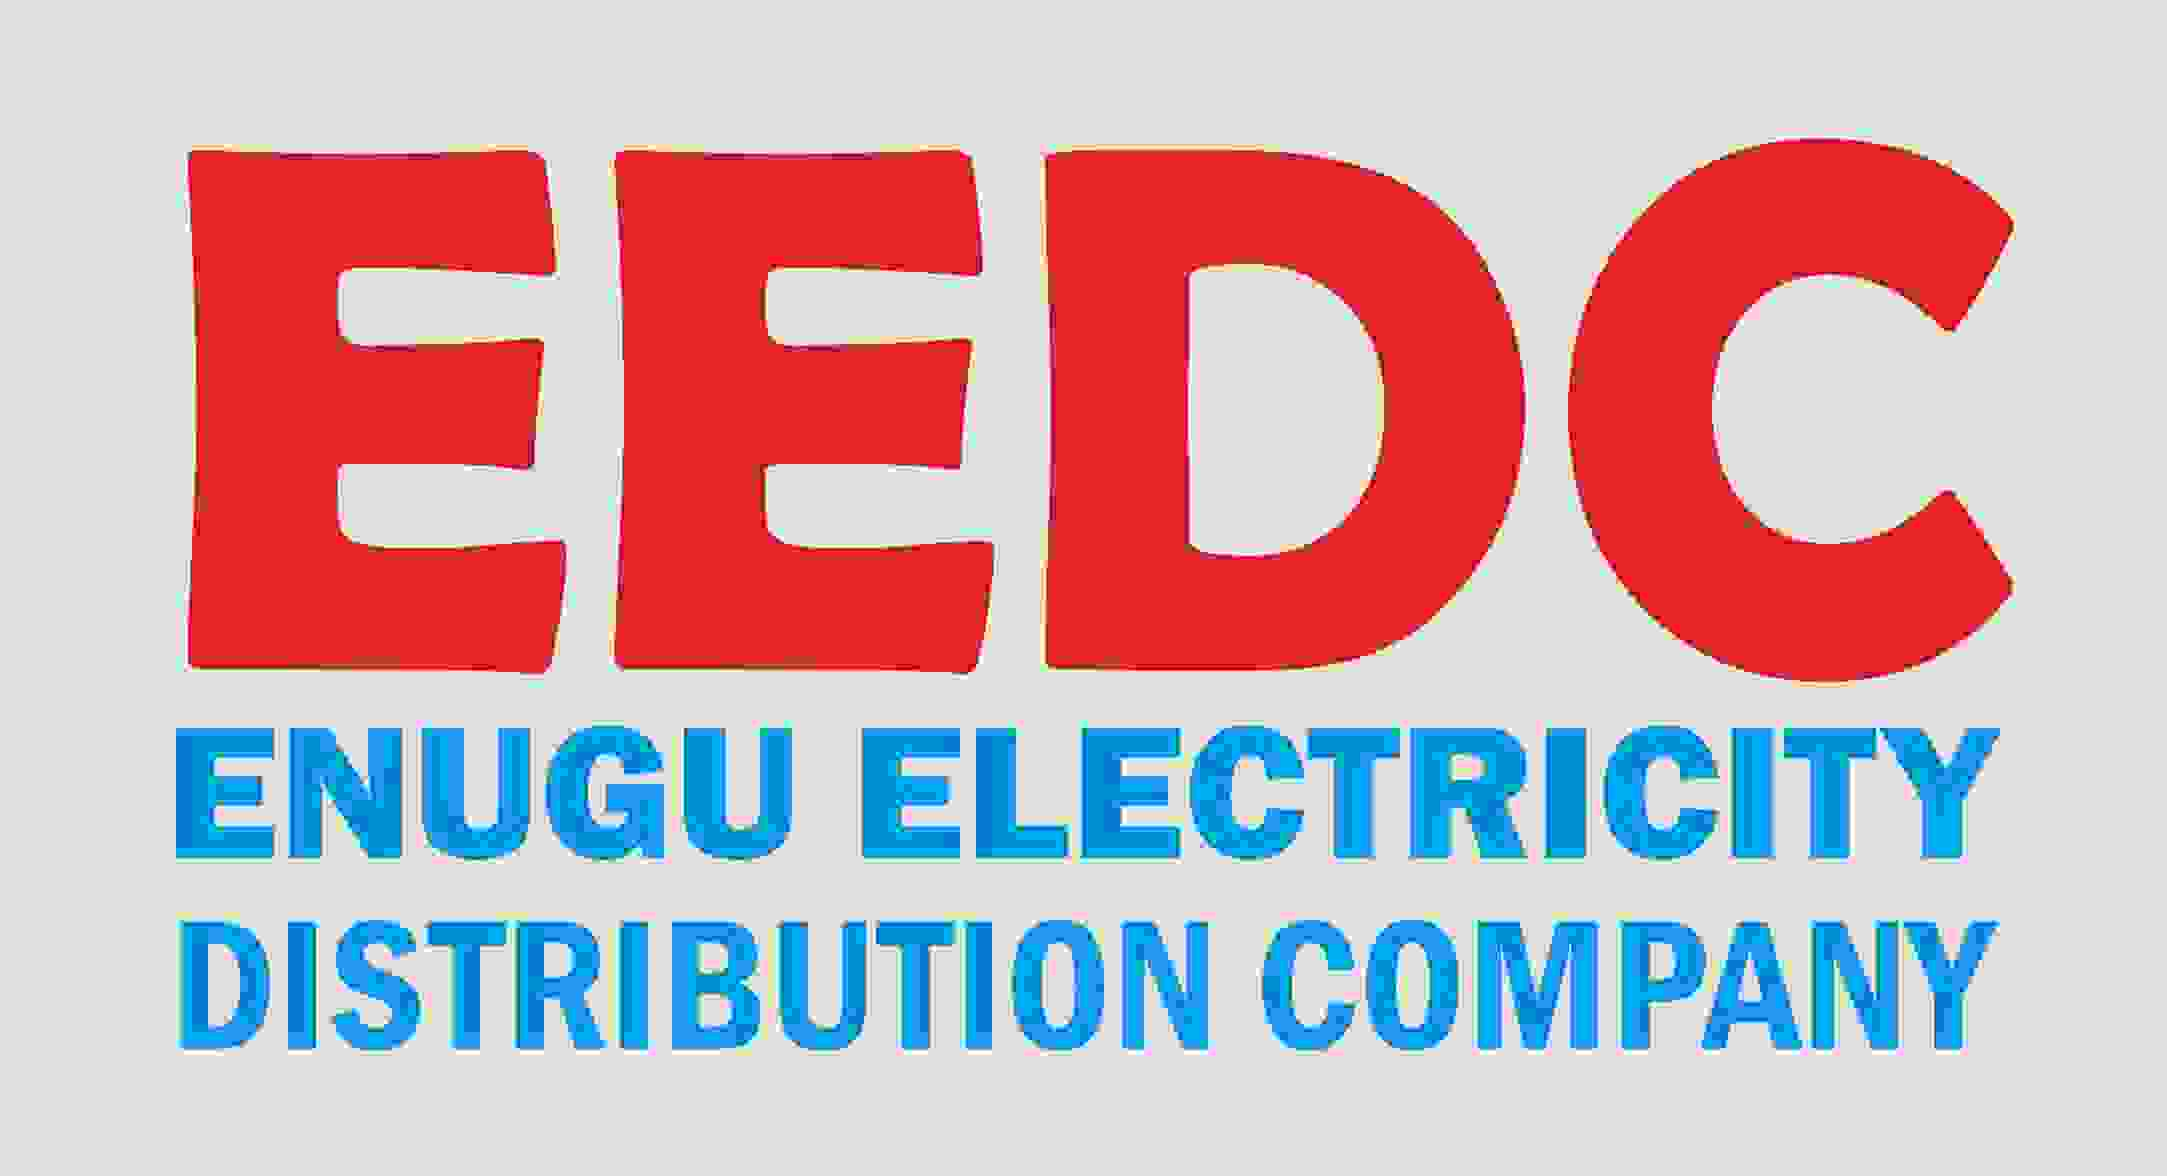 Power Theft crippling Electricity Distribution - EEDC